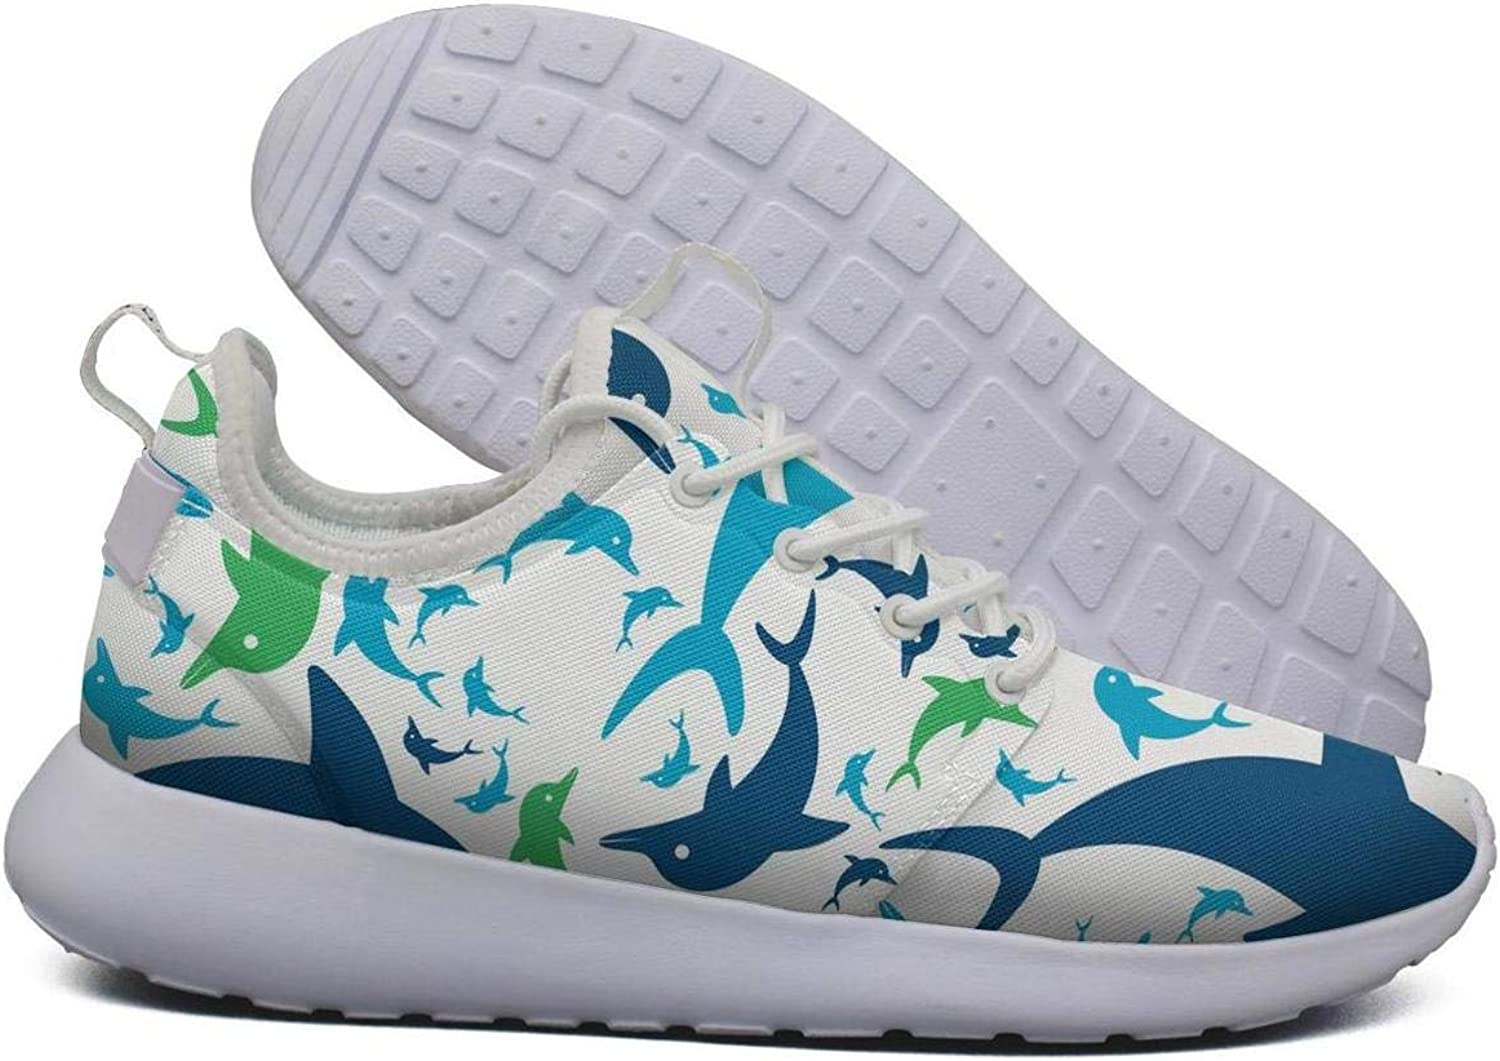 Hoohle Sports Womens Dolphin Swim Happy Flex Mesh Roshe 2 Lightweight Soft Fashion Sneakers shoes